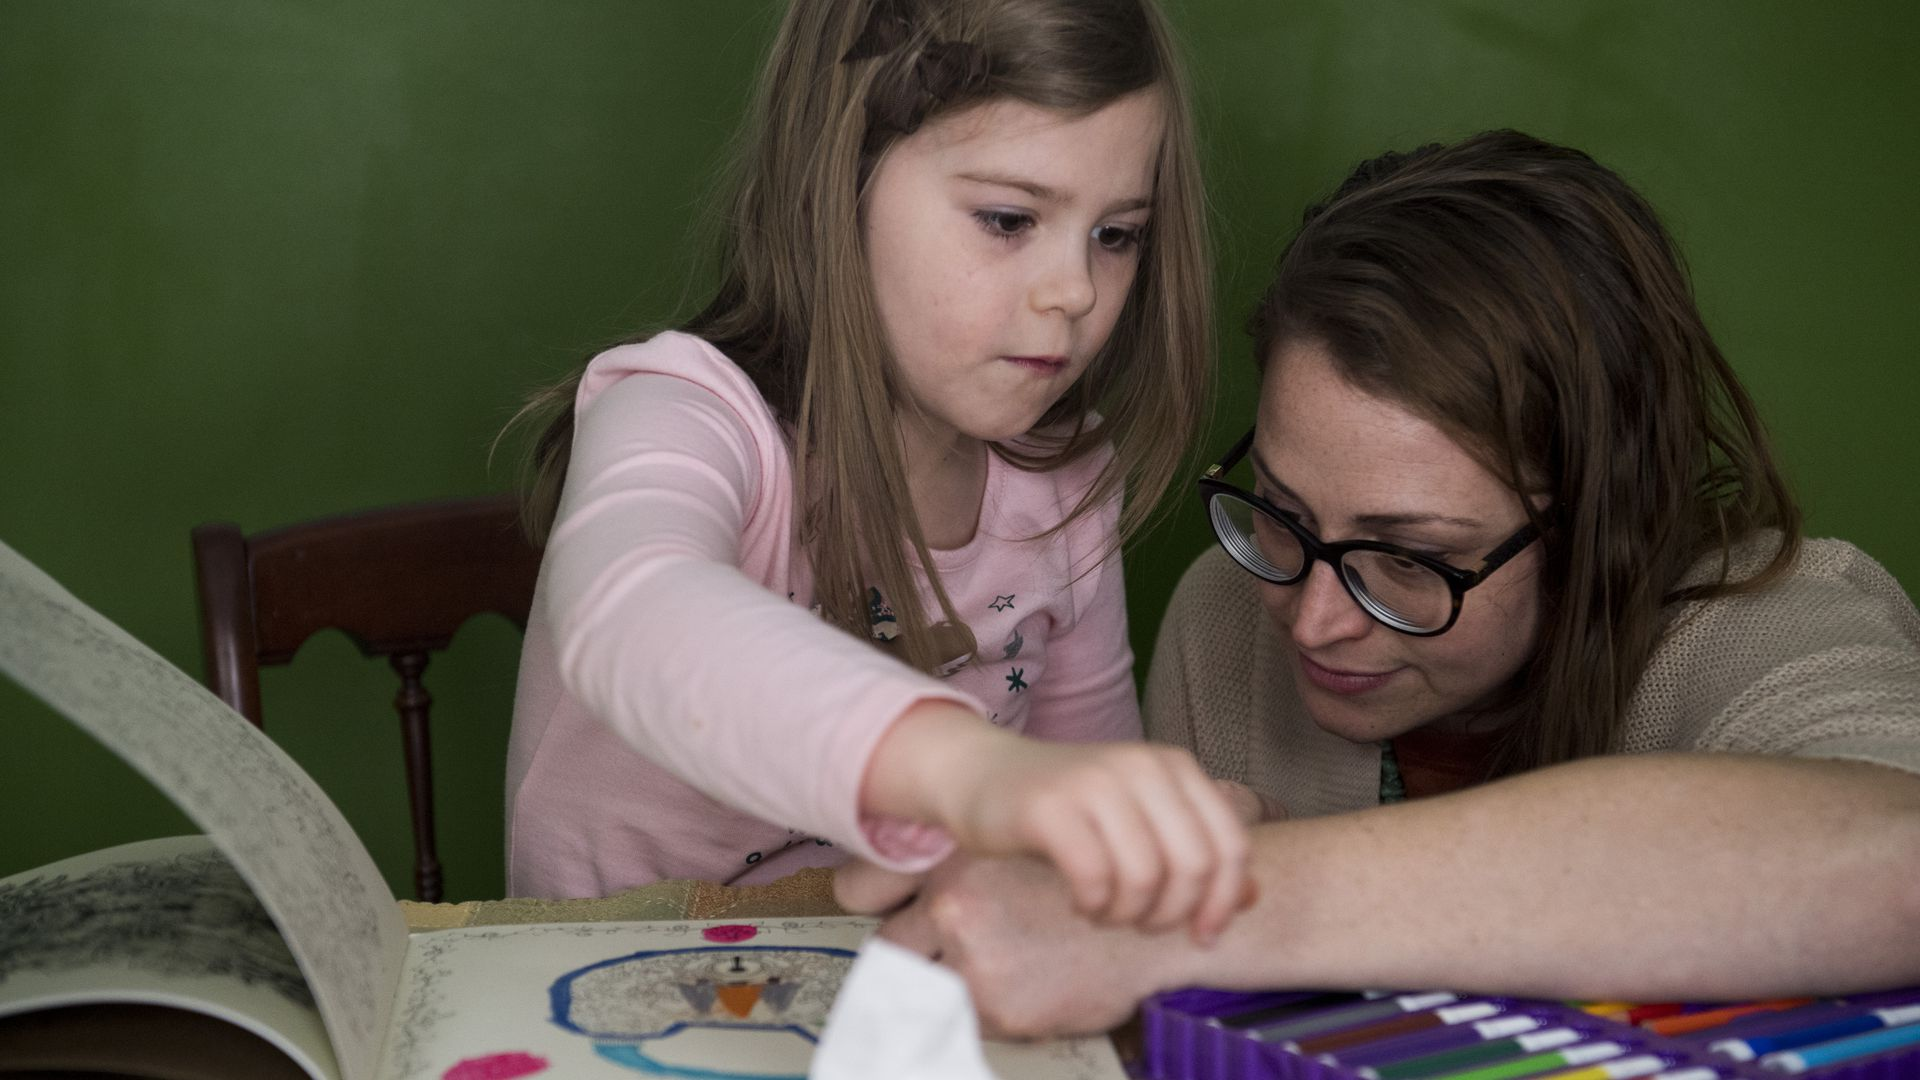 A mother on Medicaid in Kentucky plays with her daughter